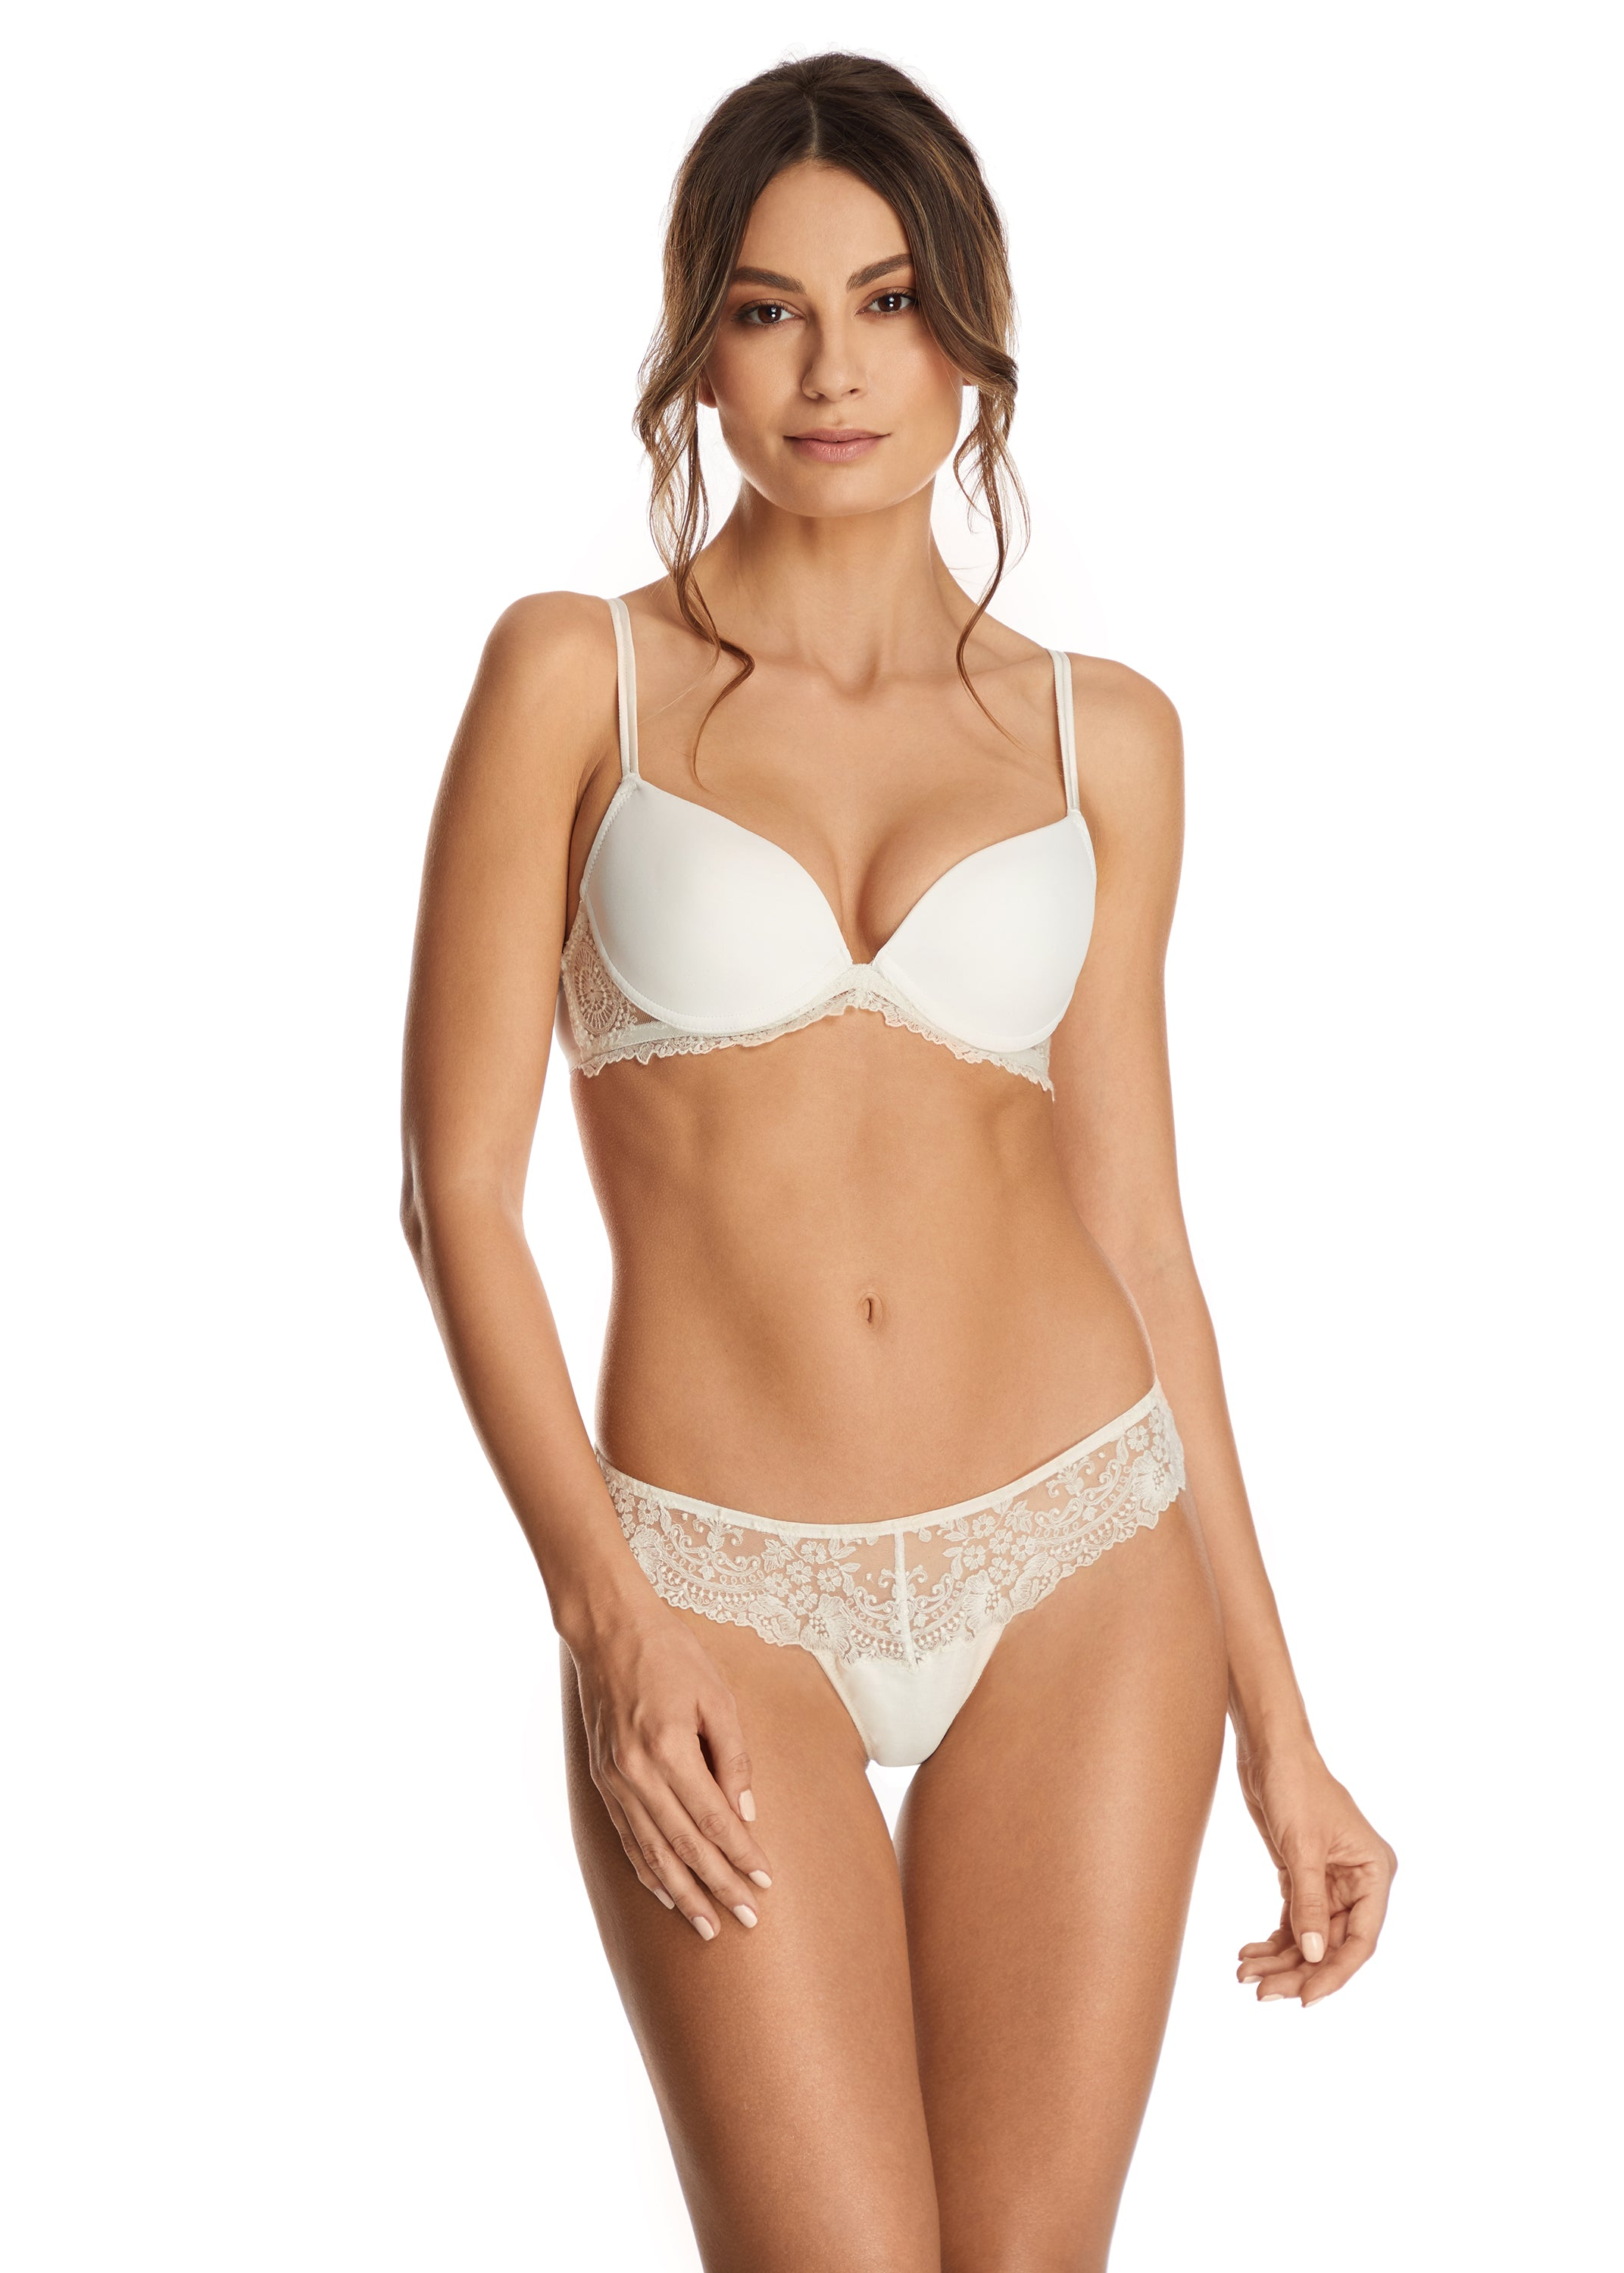 I.D. Sarrieri lace padded bra and thong in Pearled Ivory